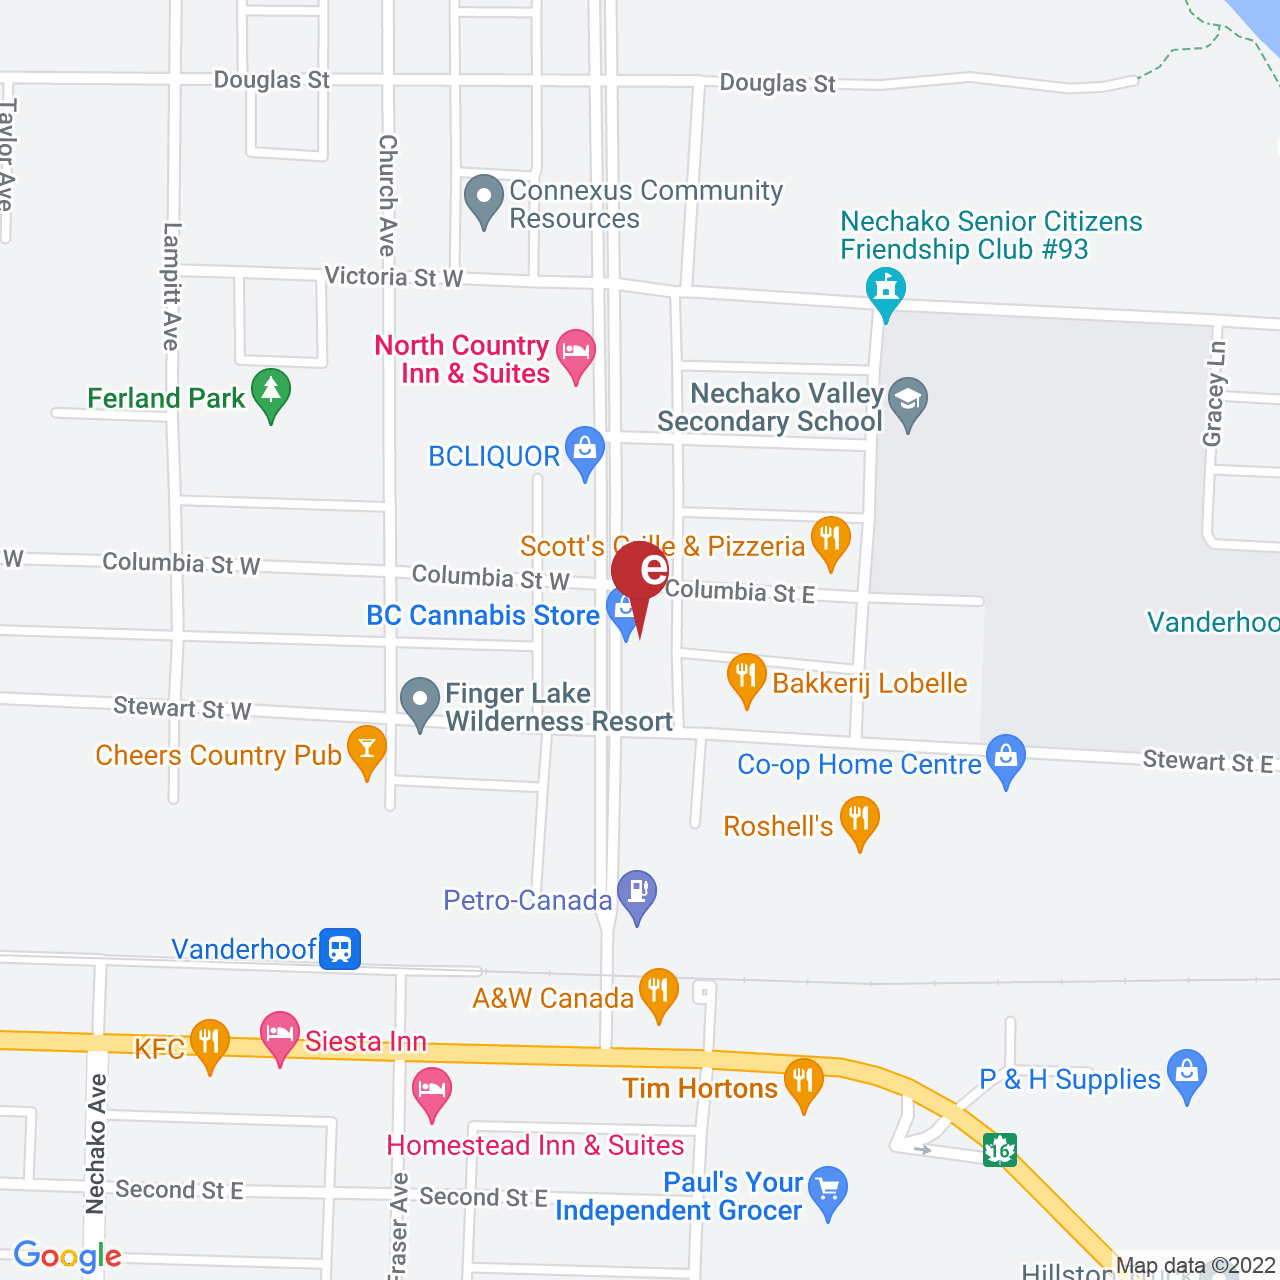 Street map for BC Cannabis Store Vanderhoof, 2444 Burrard Ave, Vanderhoof BC